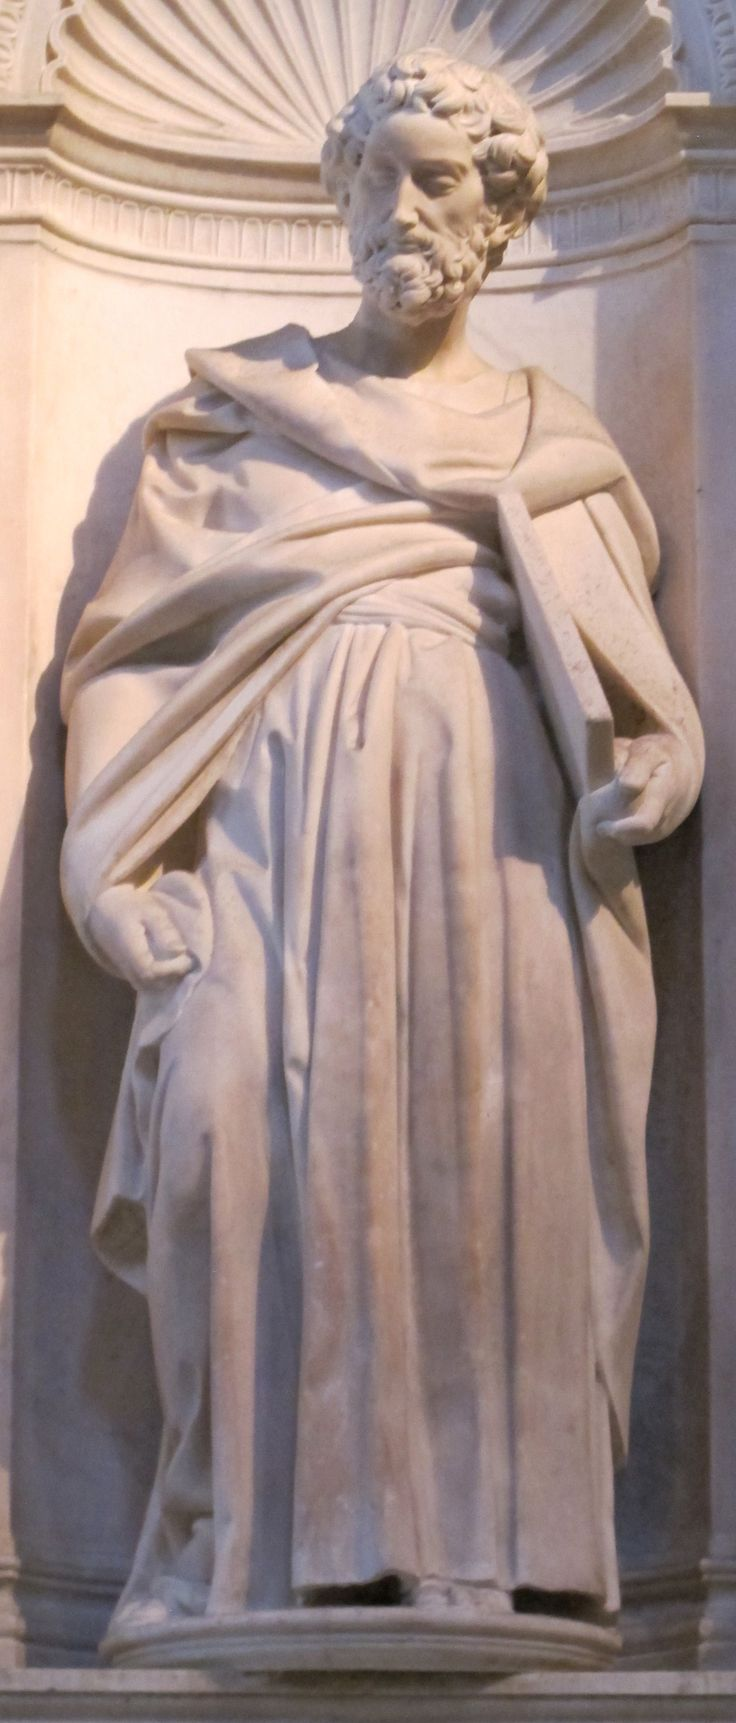 Statue of Saint Peter 1503–1504 by Michelangelo in the Cathedral of Siena